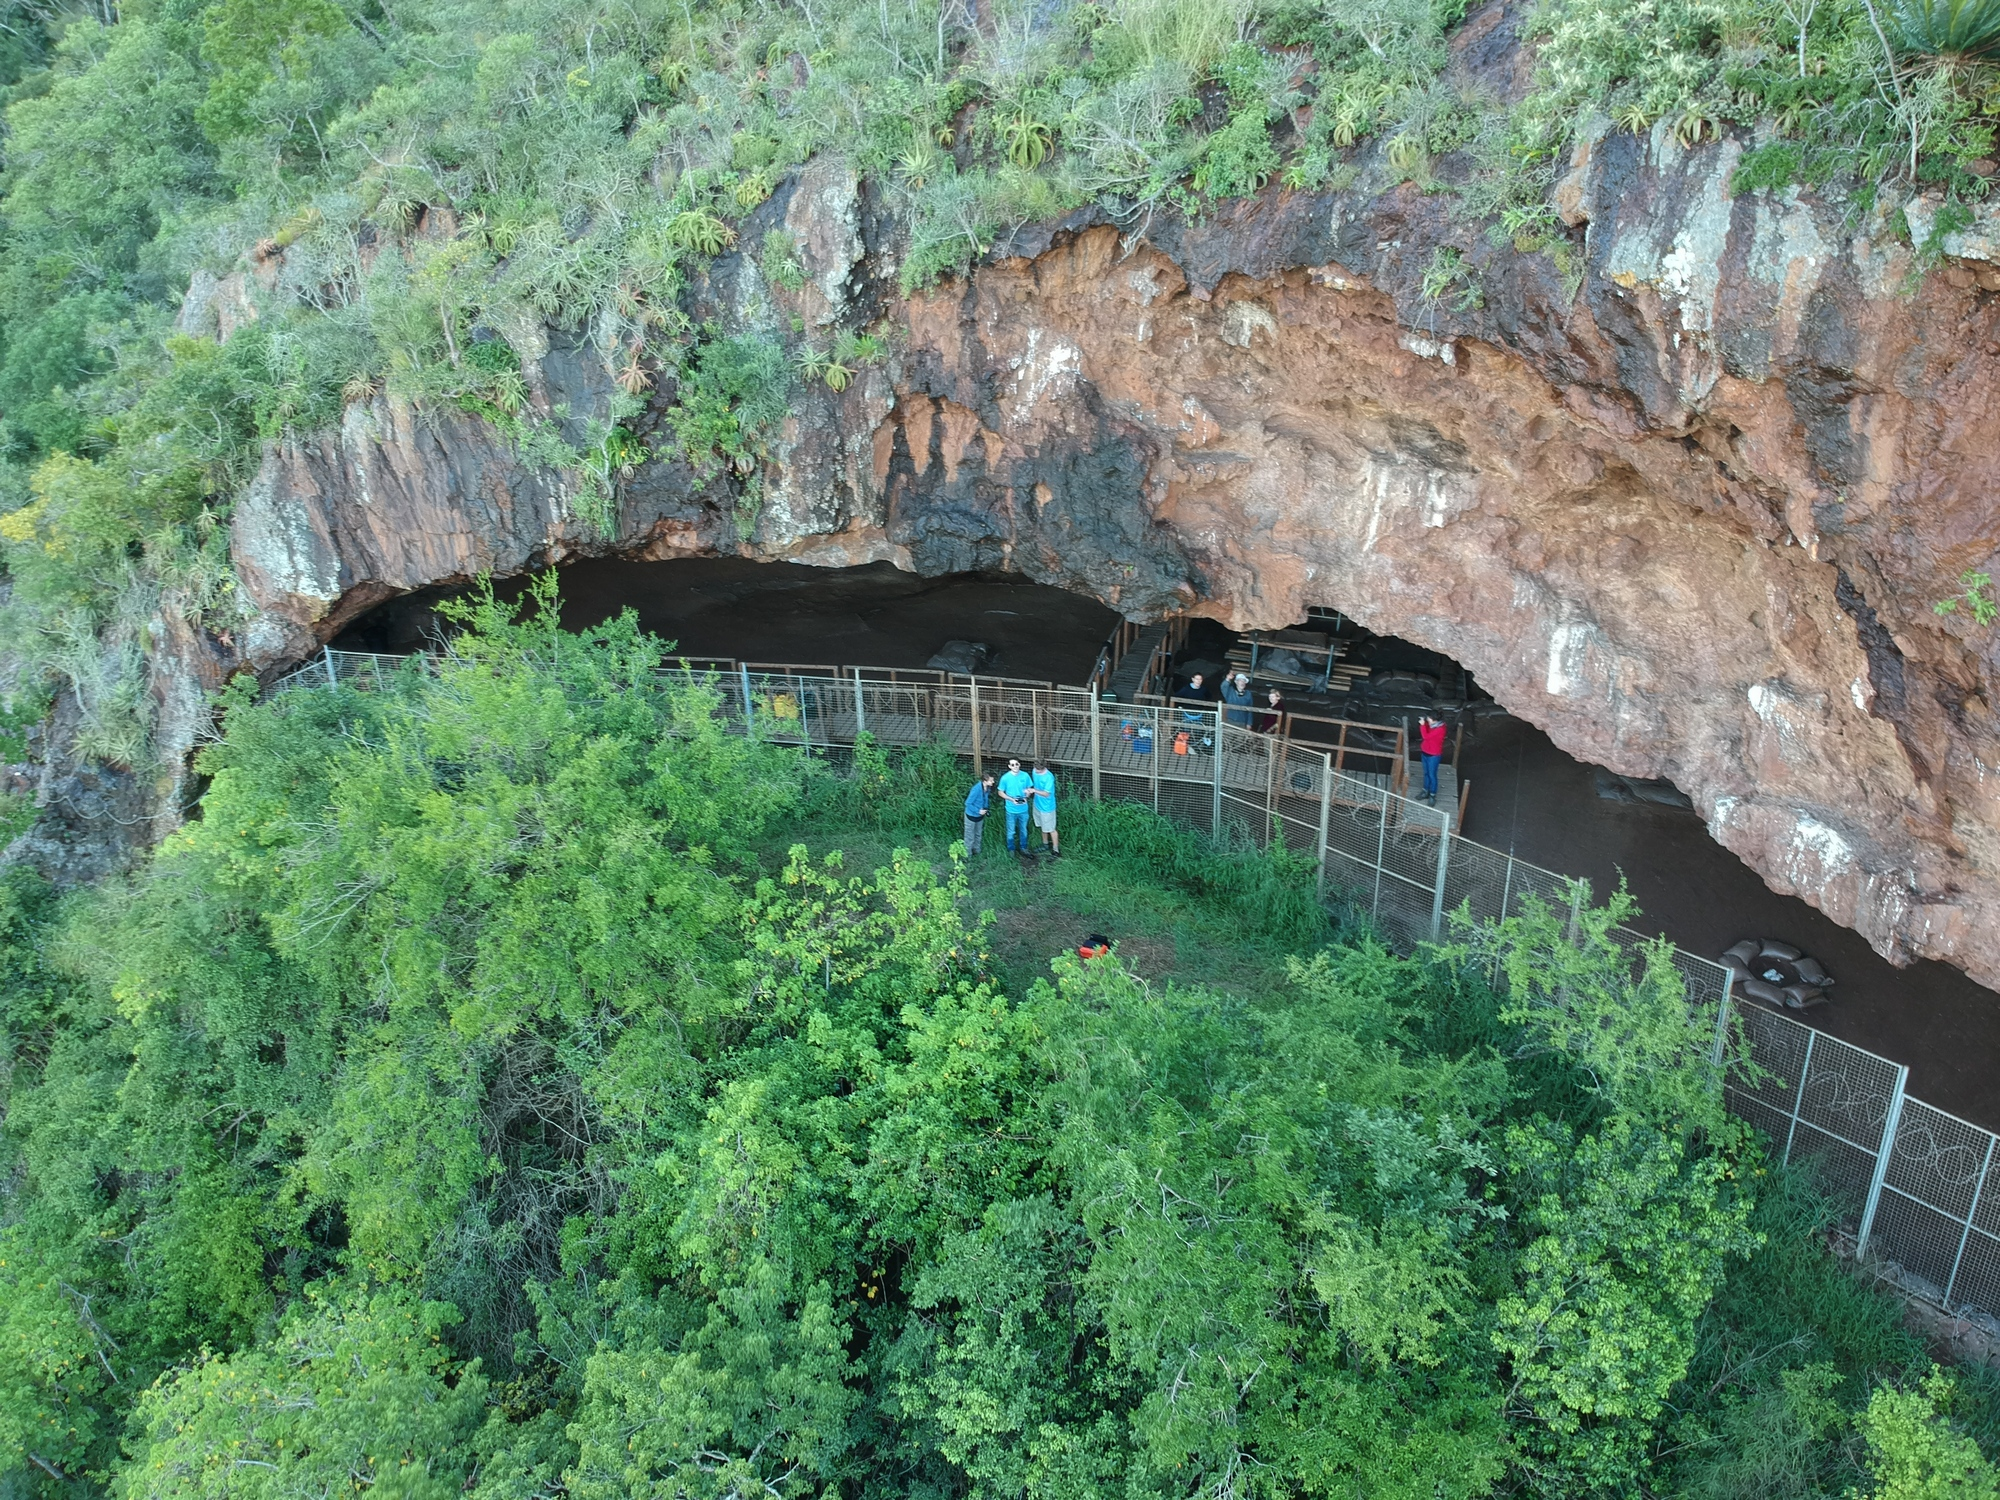 Entrance to the Border Cave in South Africa.